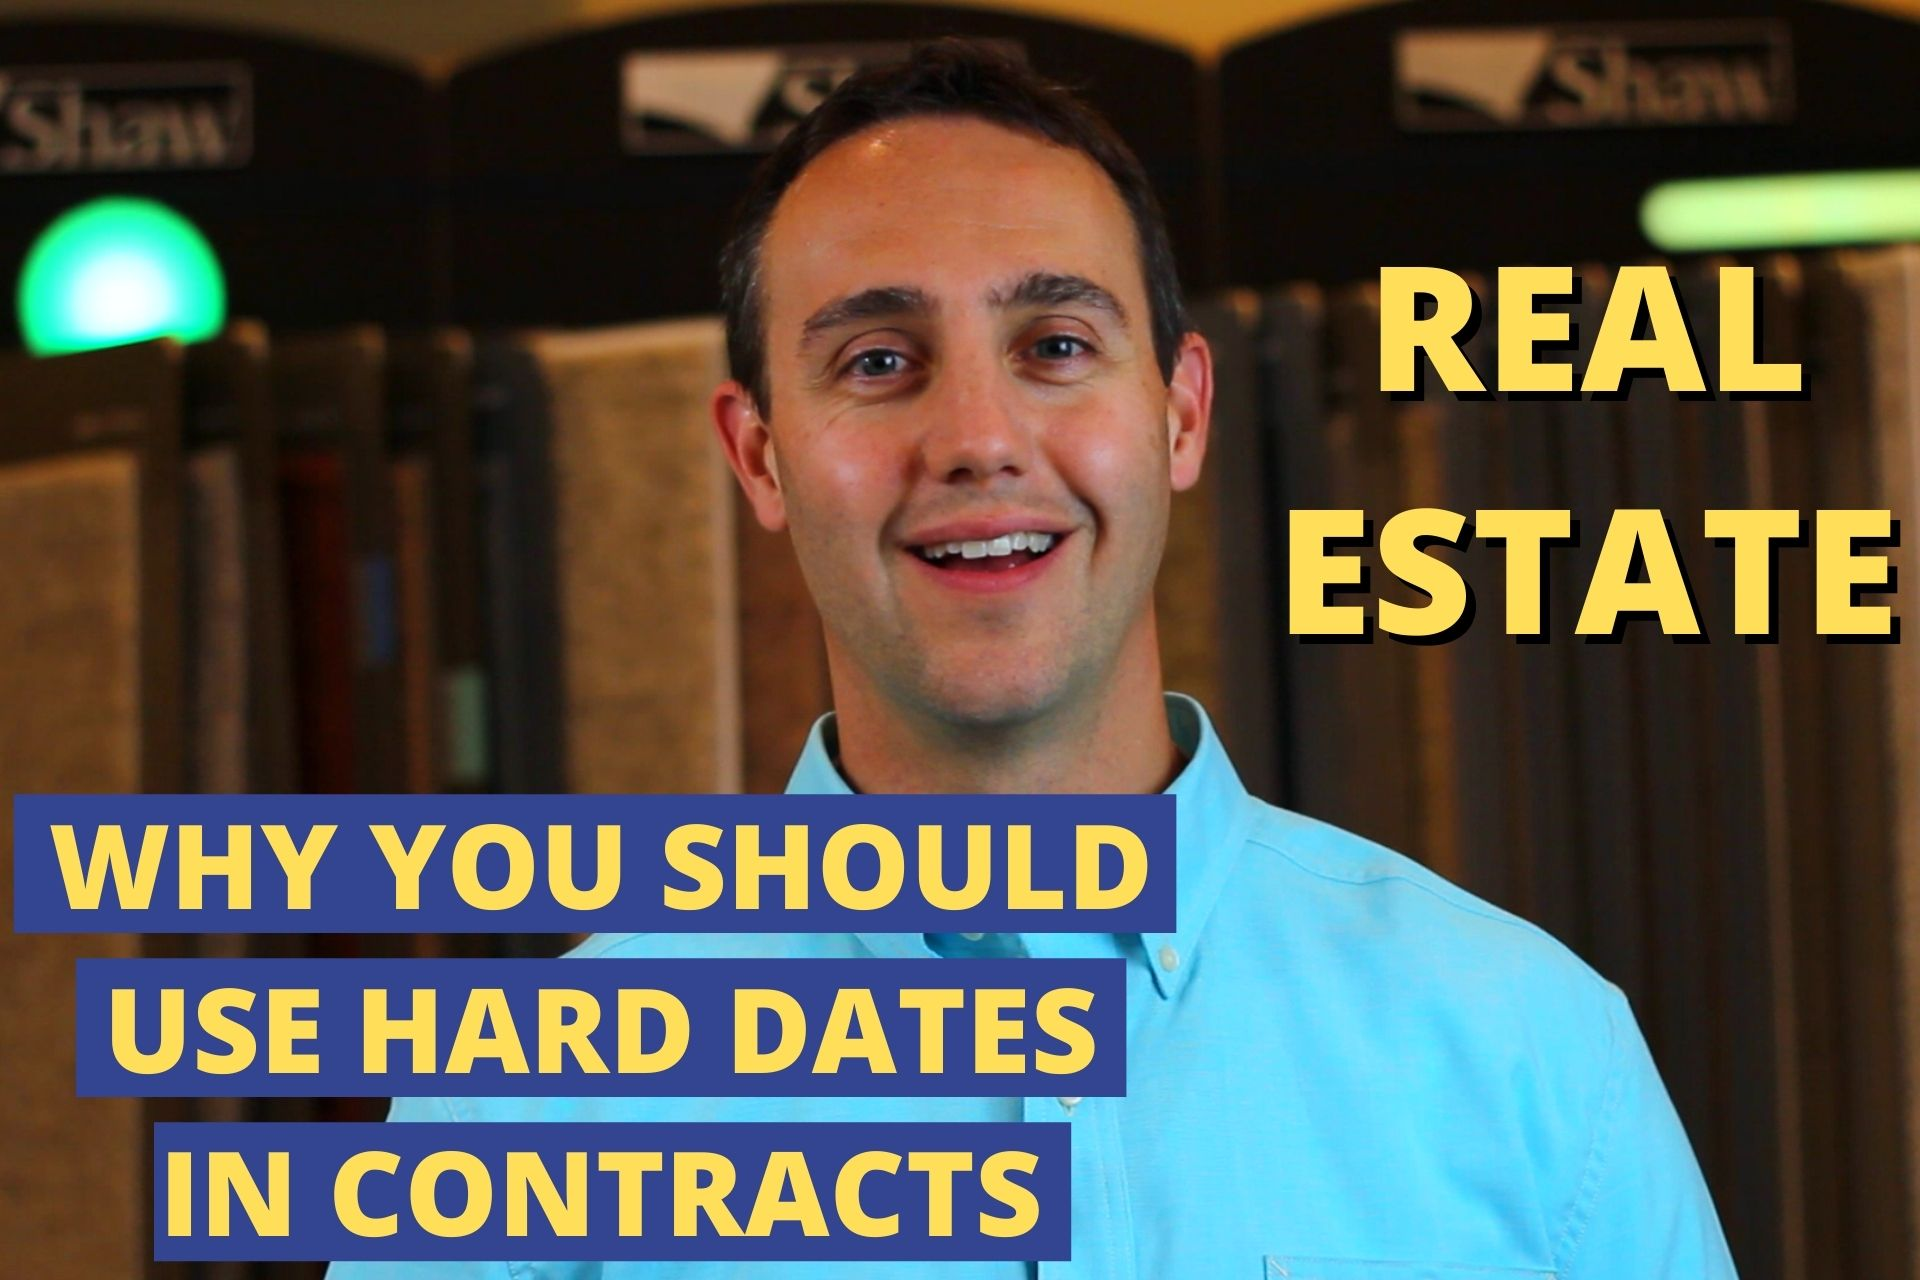 Use hard dates in contracts